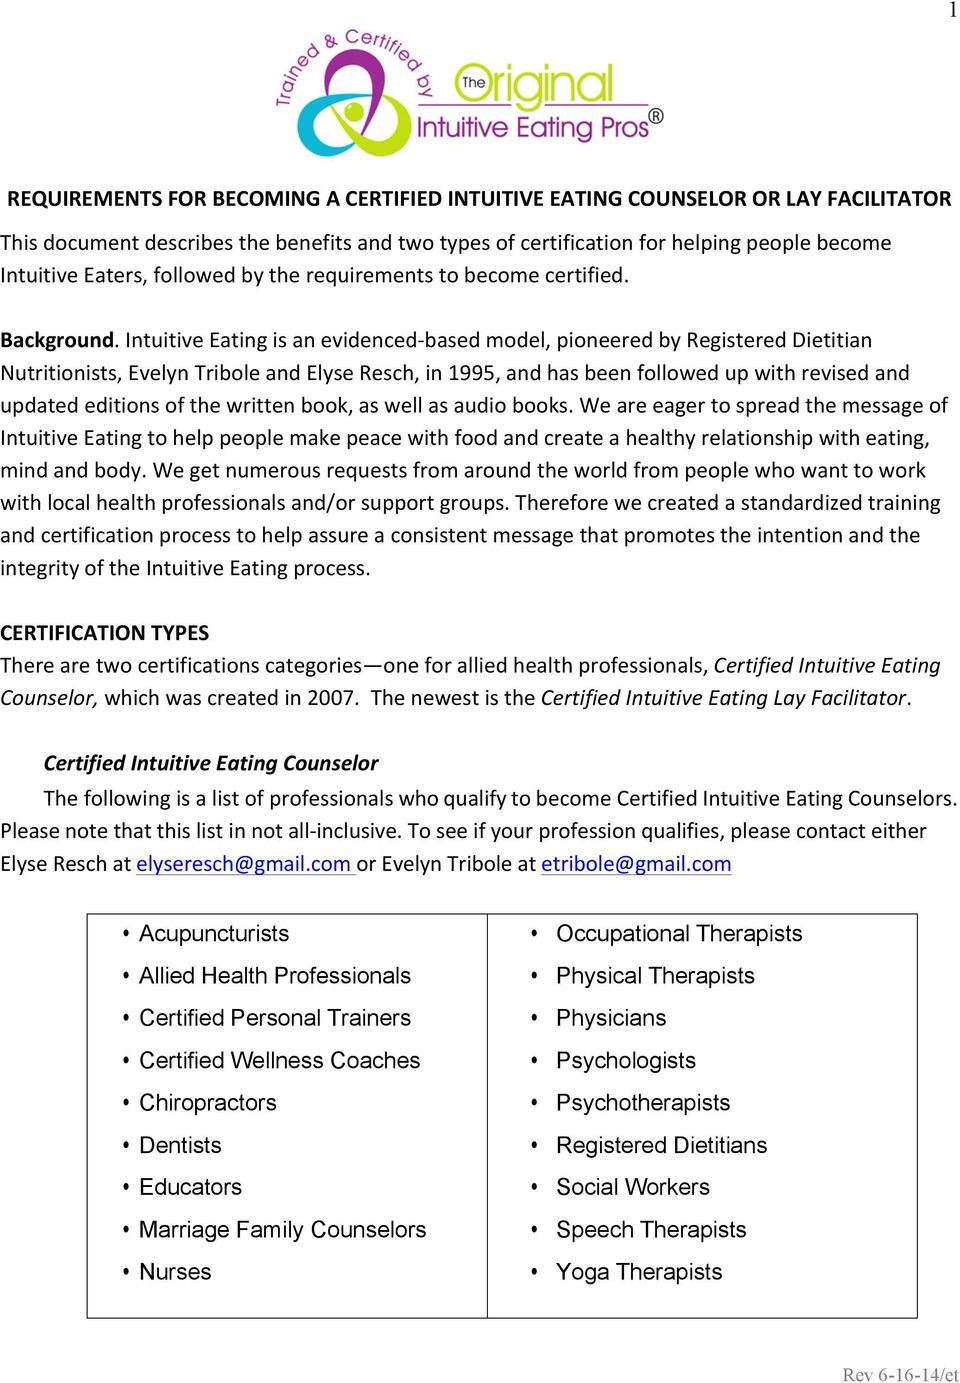 Requirements For Becoming A Certified Intuitive Eating Counselor Or